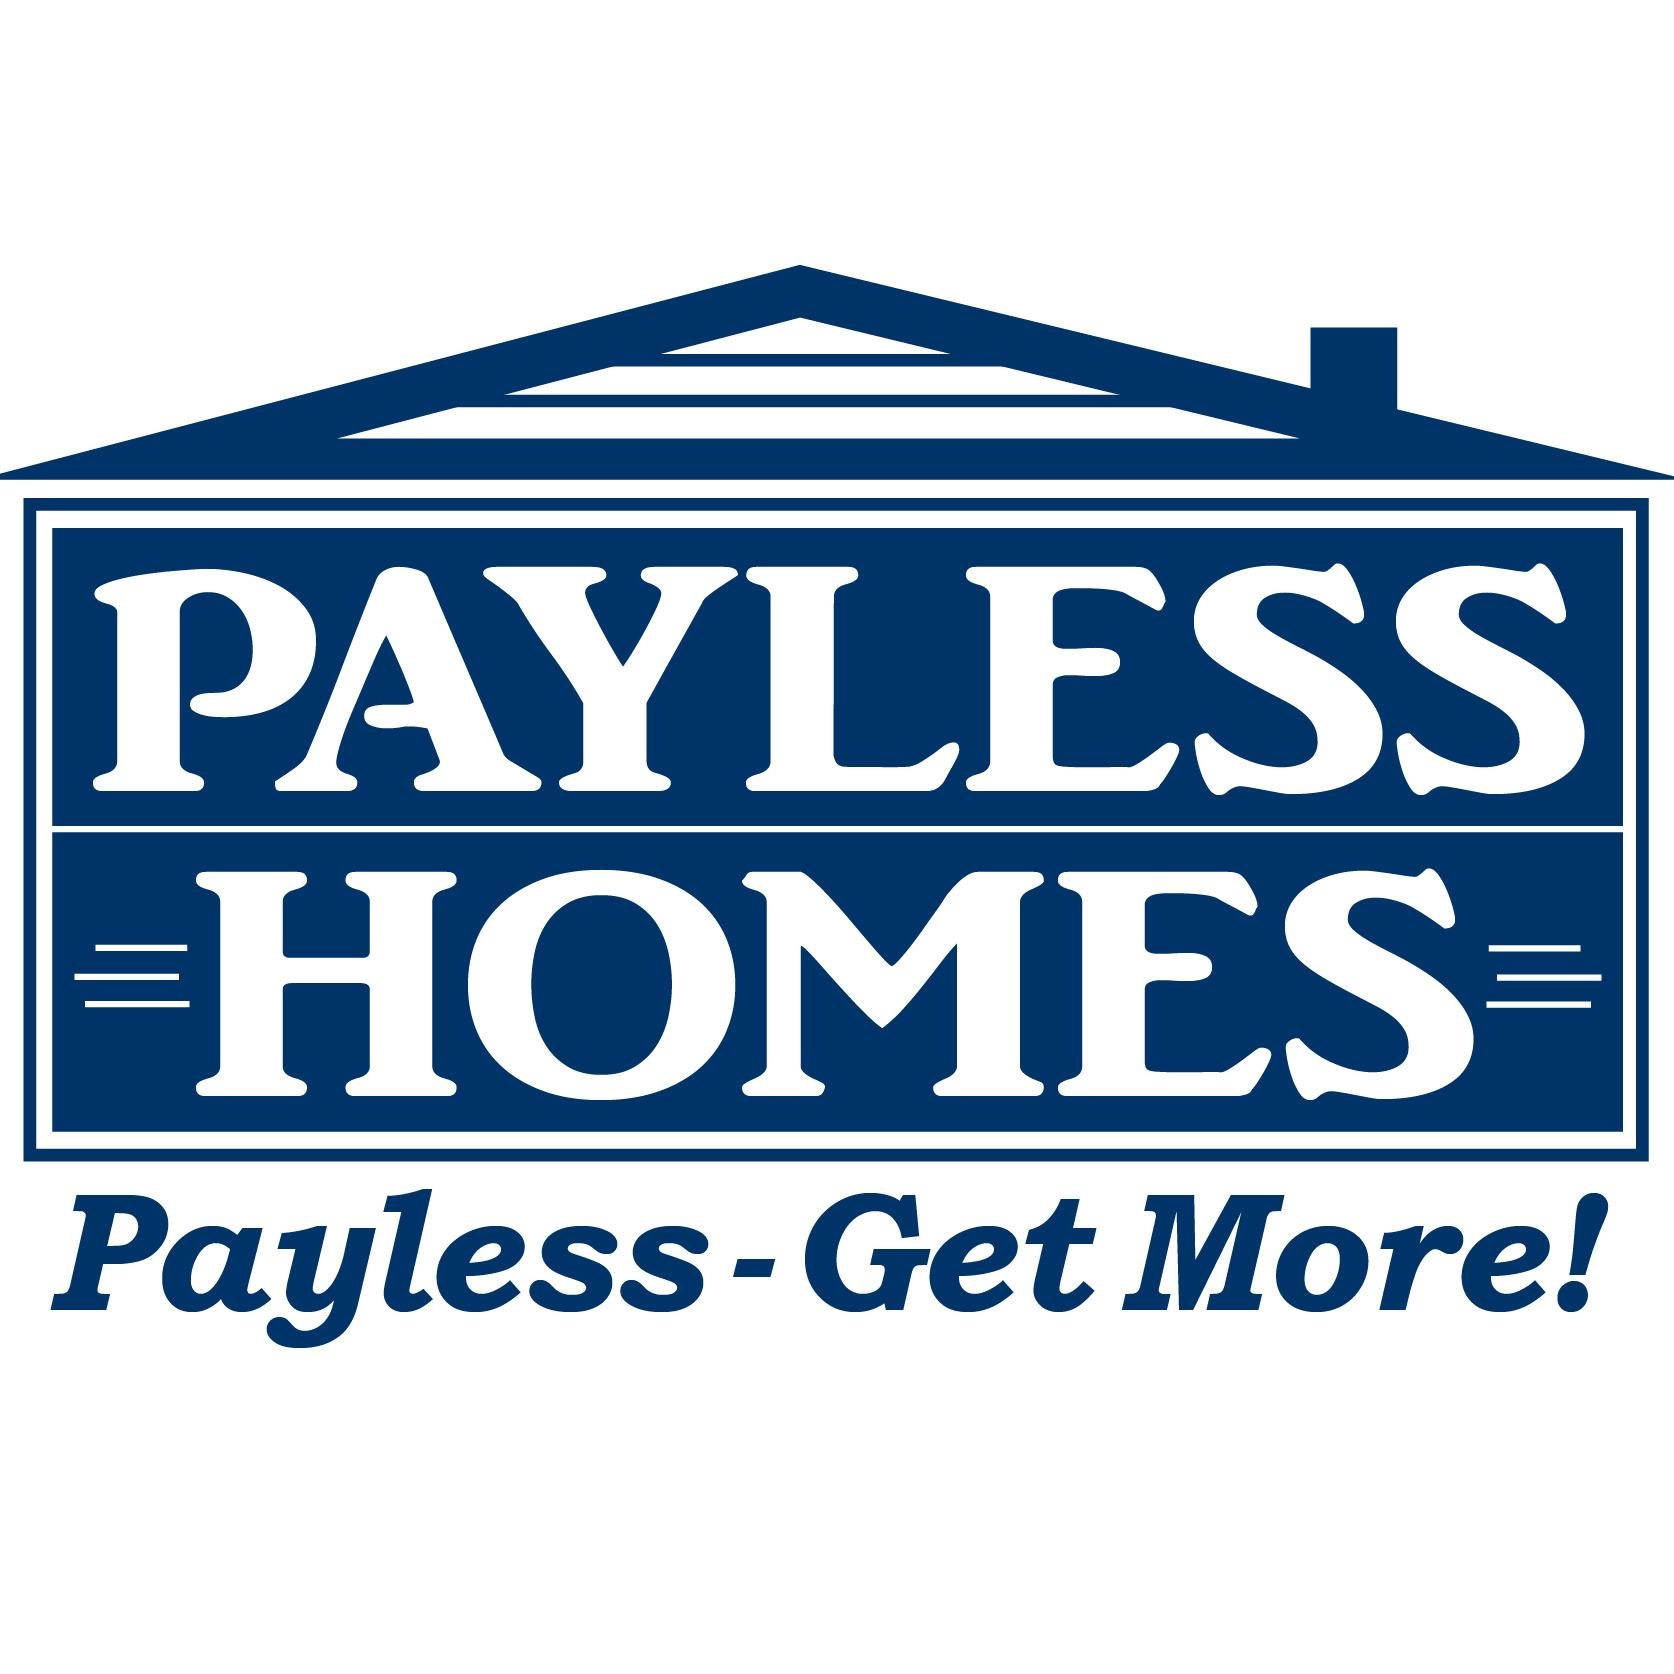 Payless homes coupons near me in wesley chapel 8coupons for Local home builders near me